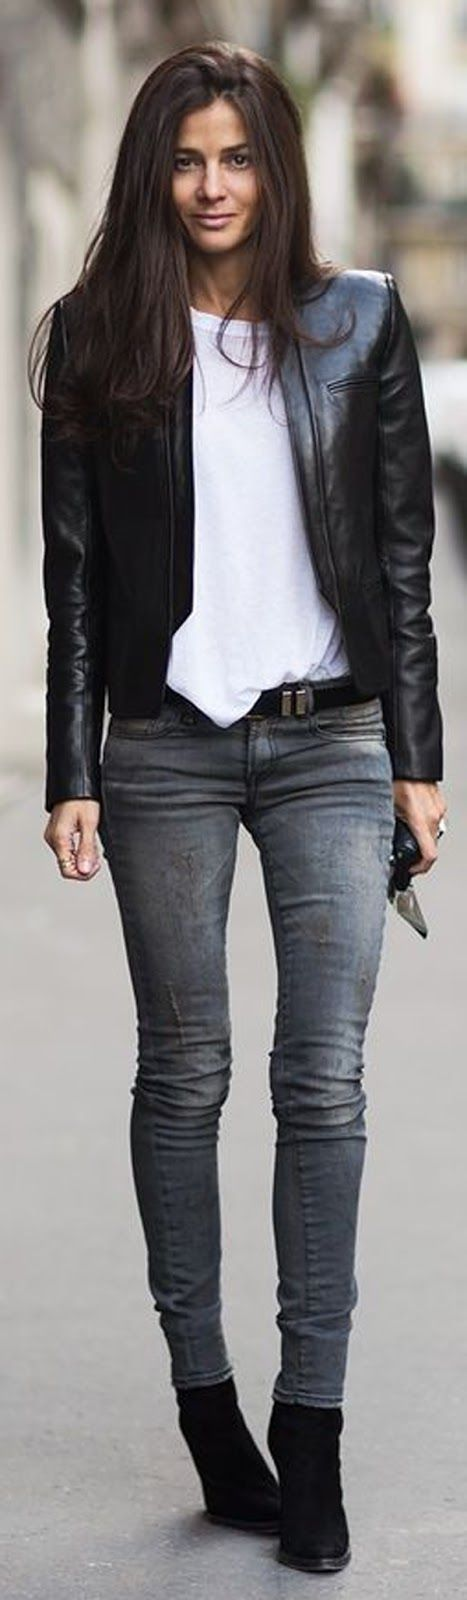 skinny jeans + leather jacket